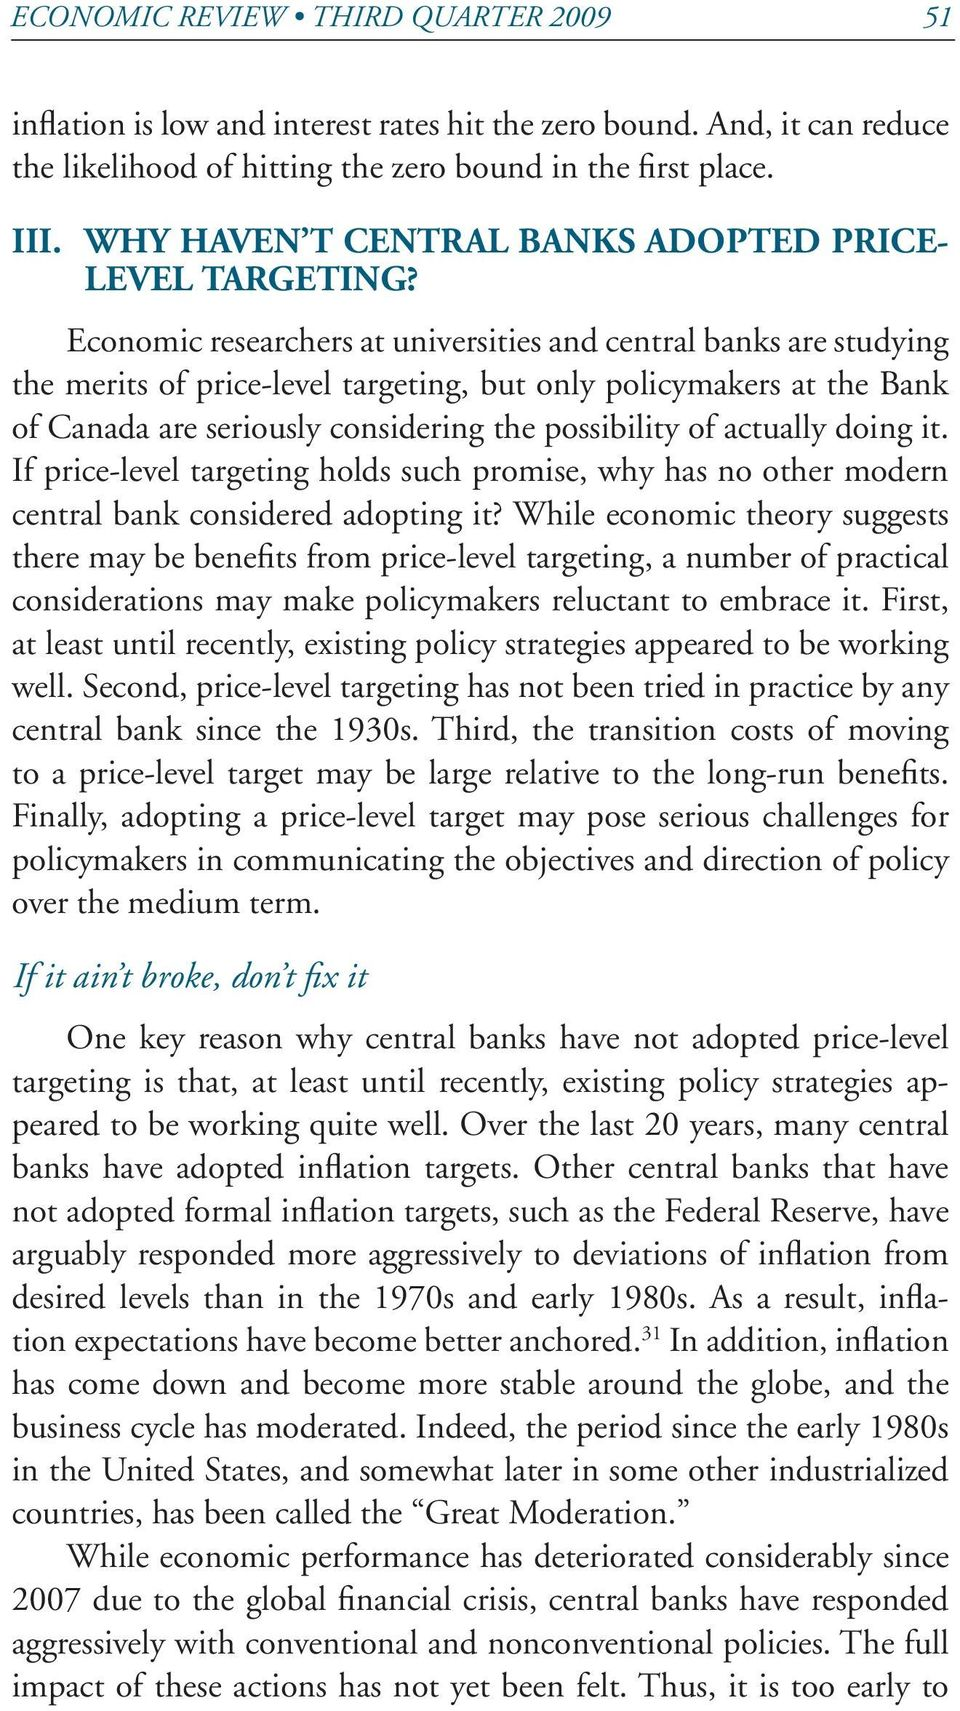 Economic researchers at universities and central banks are studying the merits of price-level targeting, but only policymakers at the Bank of Canada are seriously considering the possibility of